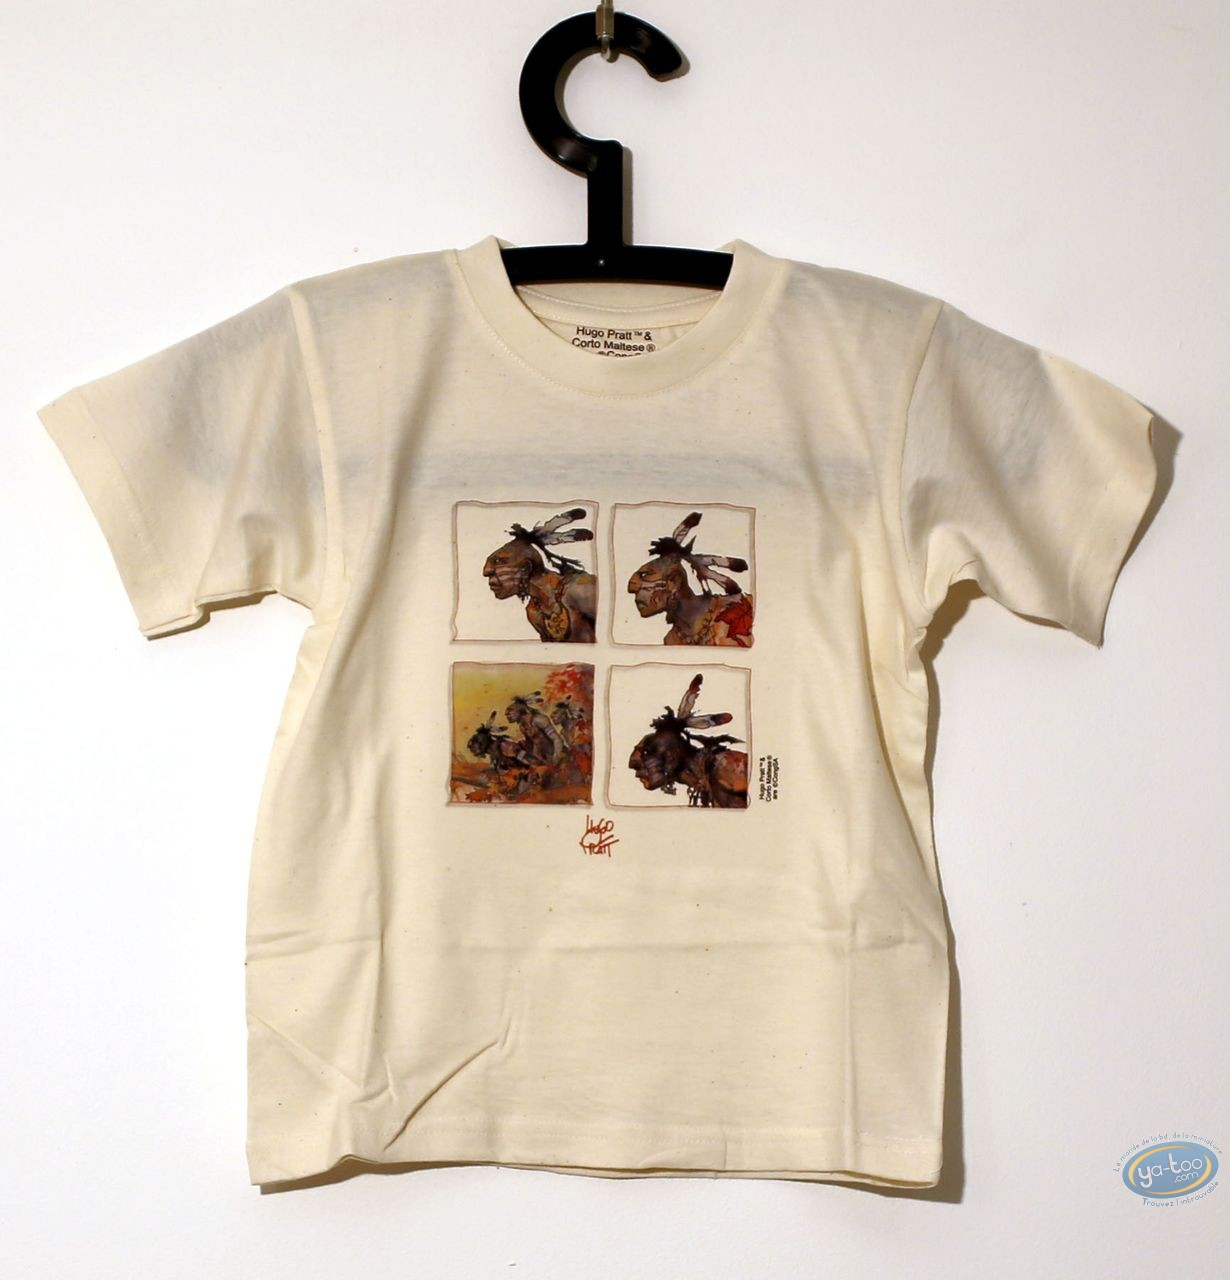 Clothes, Corto Maltese : T-shirt, Corto Maltese : Kid 06/03 - 3/4 years